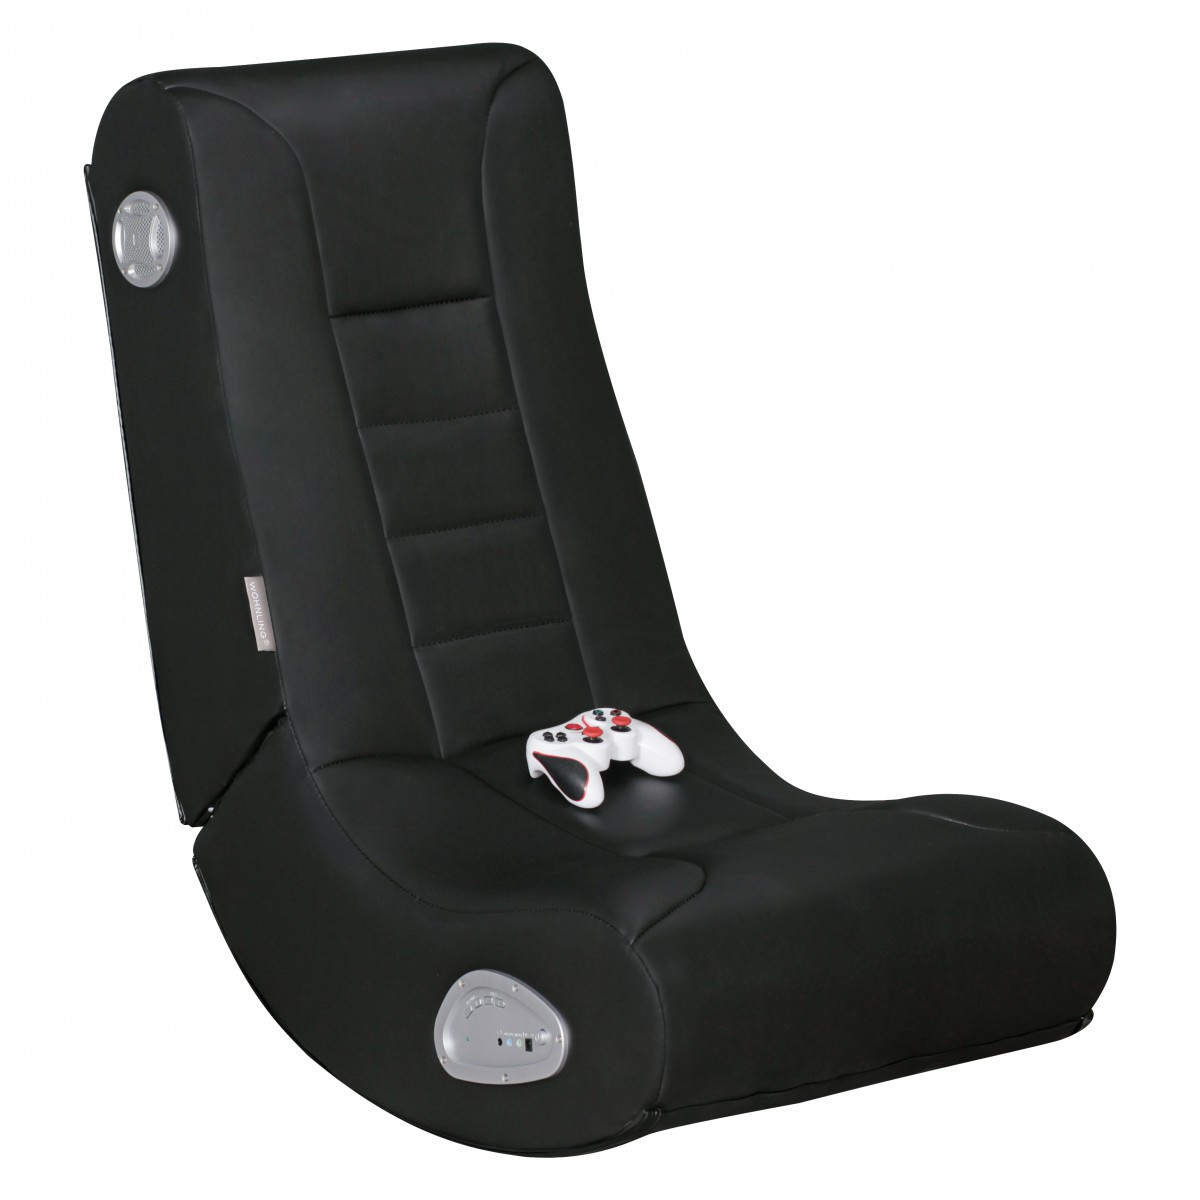 | game chair met bluetooth